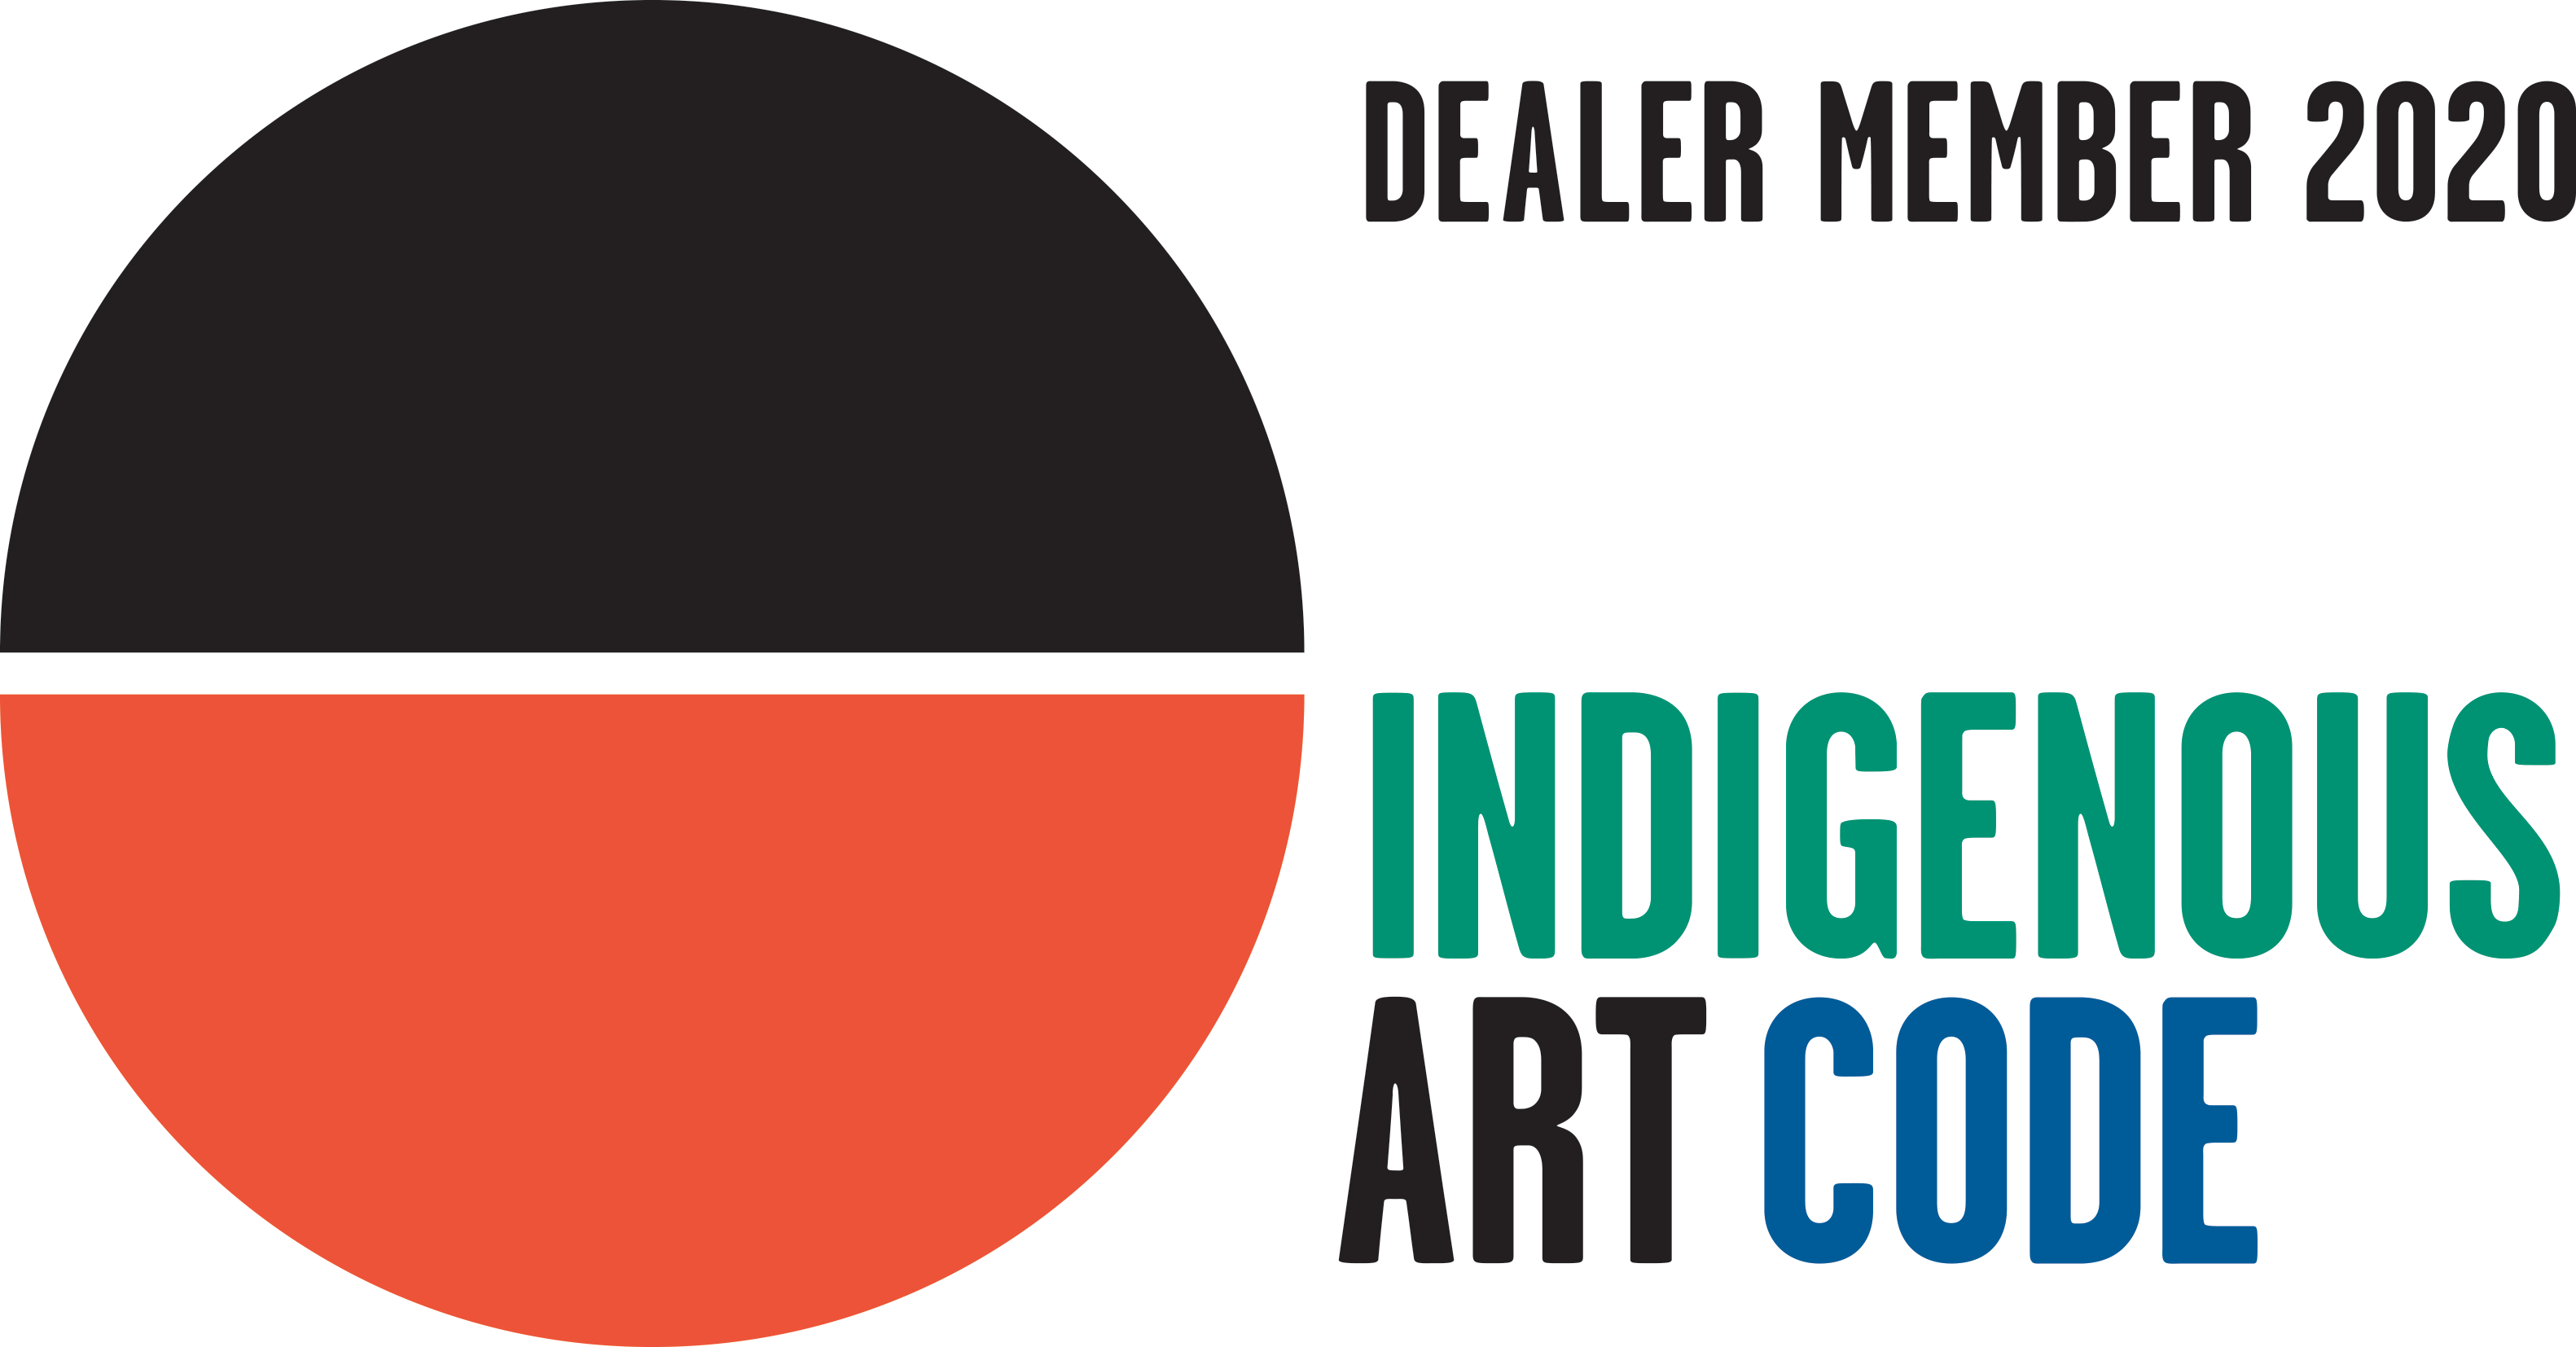 Indigenous Art Code Dealer Membership